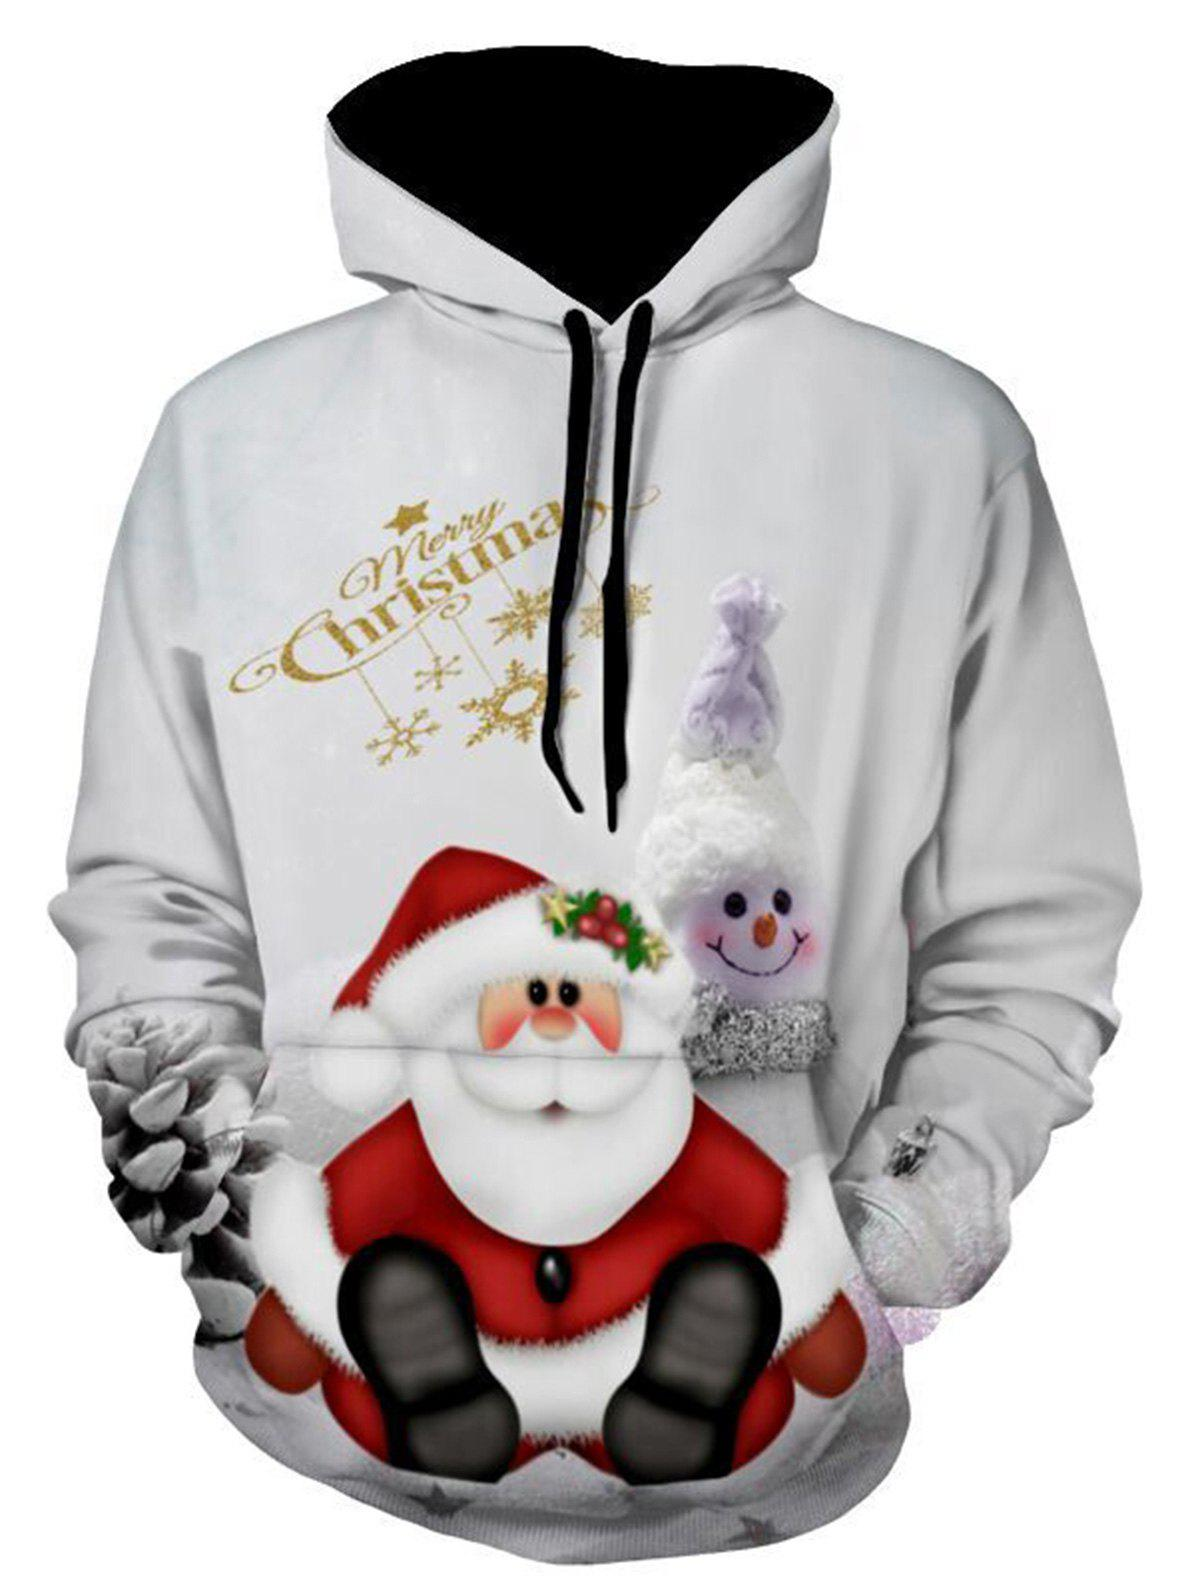 Snowman Print Christmas Pullover Hoodie - GRAY XL